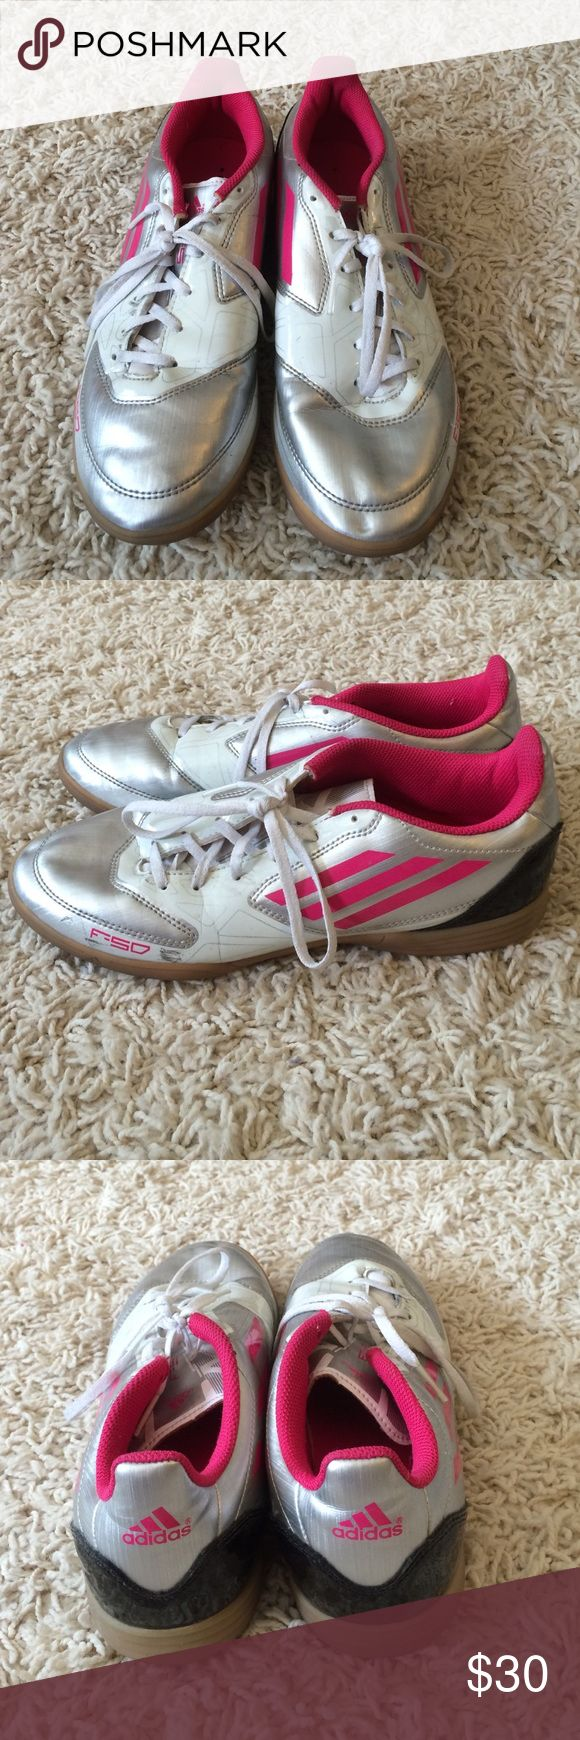 Indoor Soccer shoes These indoor soccer shoes have just a little bit of wear and are perfect for indoor turf. They have hot pink accents as well. Adidas Shoes Athletic Shoes